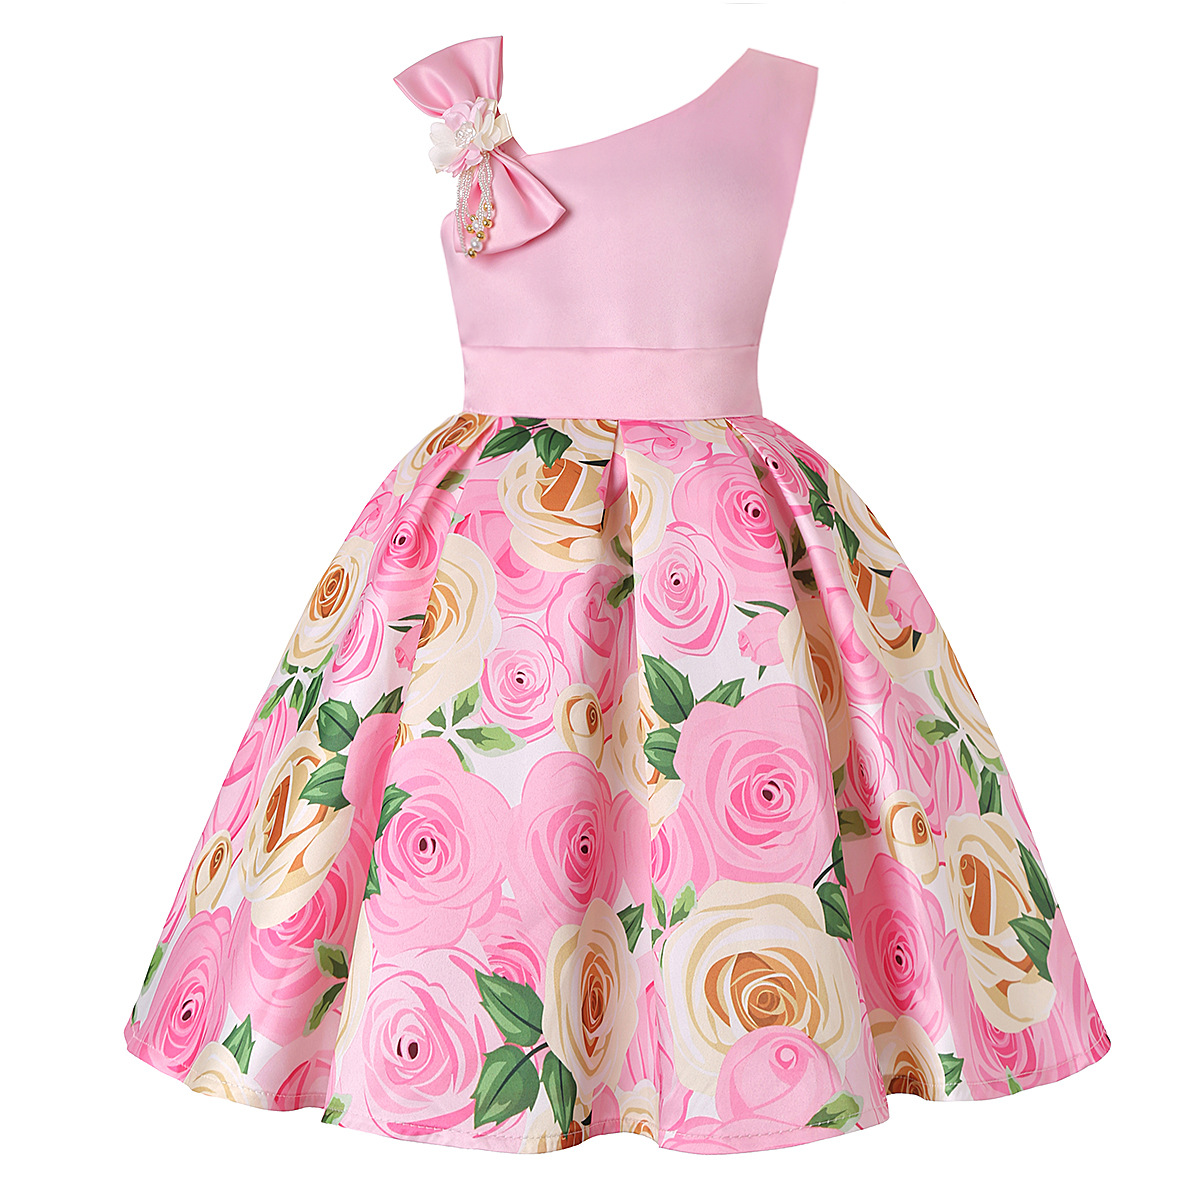 Girls Kids Chiffon Sleeveless Floral Tutu Dresses Casual Party Skater Dresses